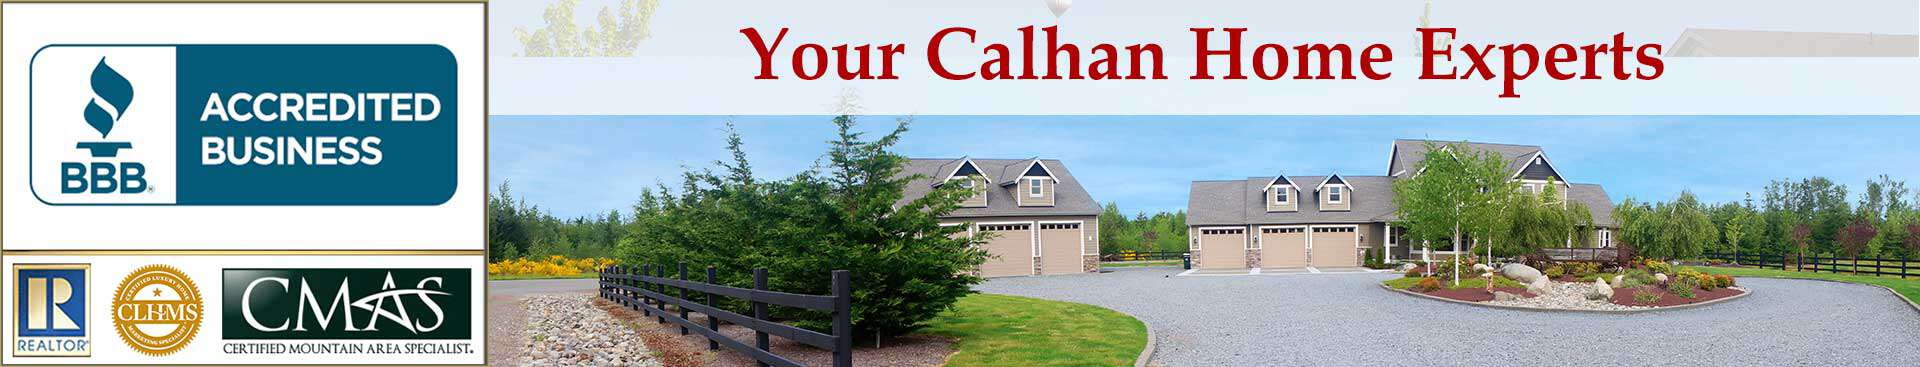 Calhan Accreditations Banner